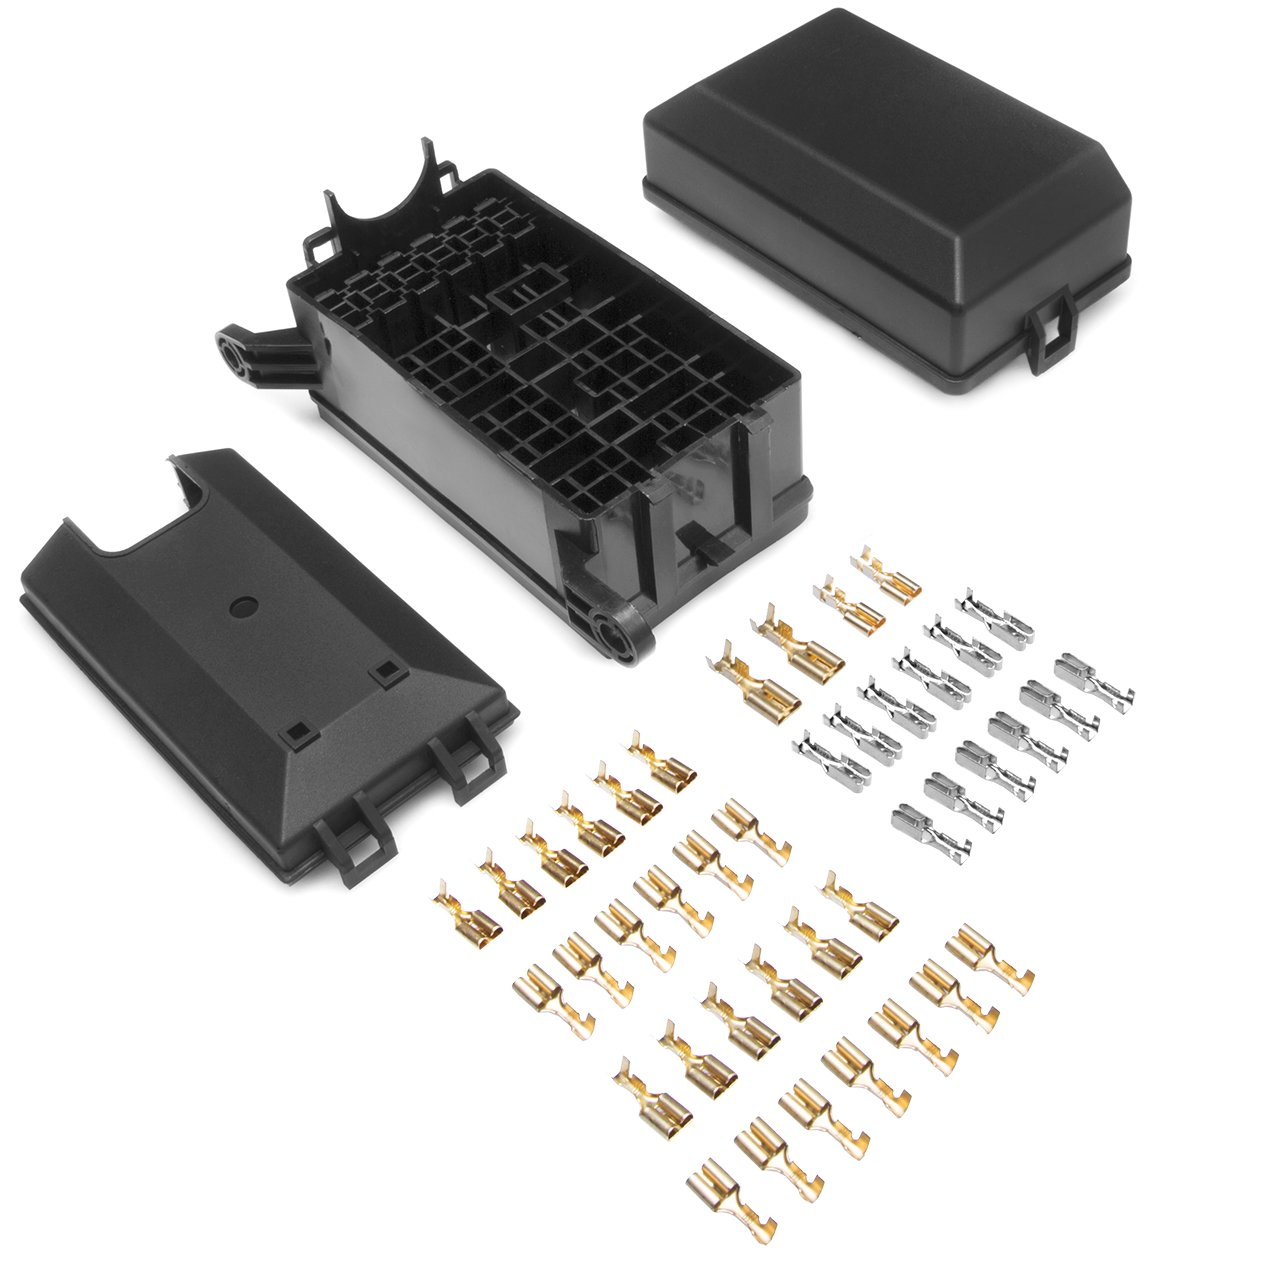 Amazon.com: DEDC 12-Slot Relay Box 12V Holder with 41pcs Metallic Wiring  Terminals, for Automotive and Marine Use, Holding Bosch Style 40/30A 5 Pin  Relays ...